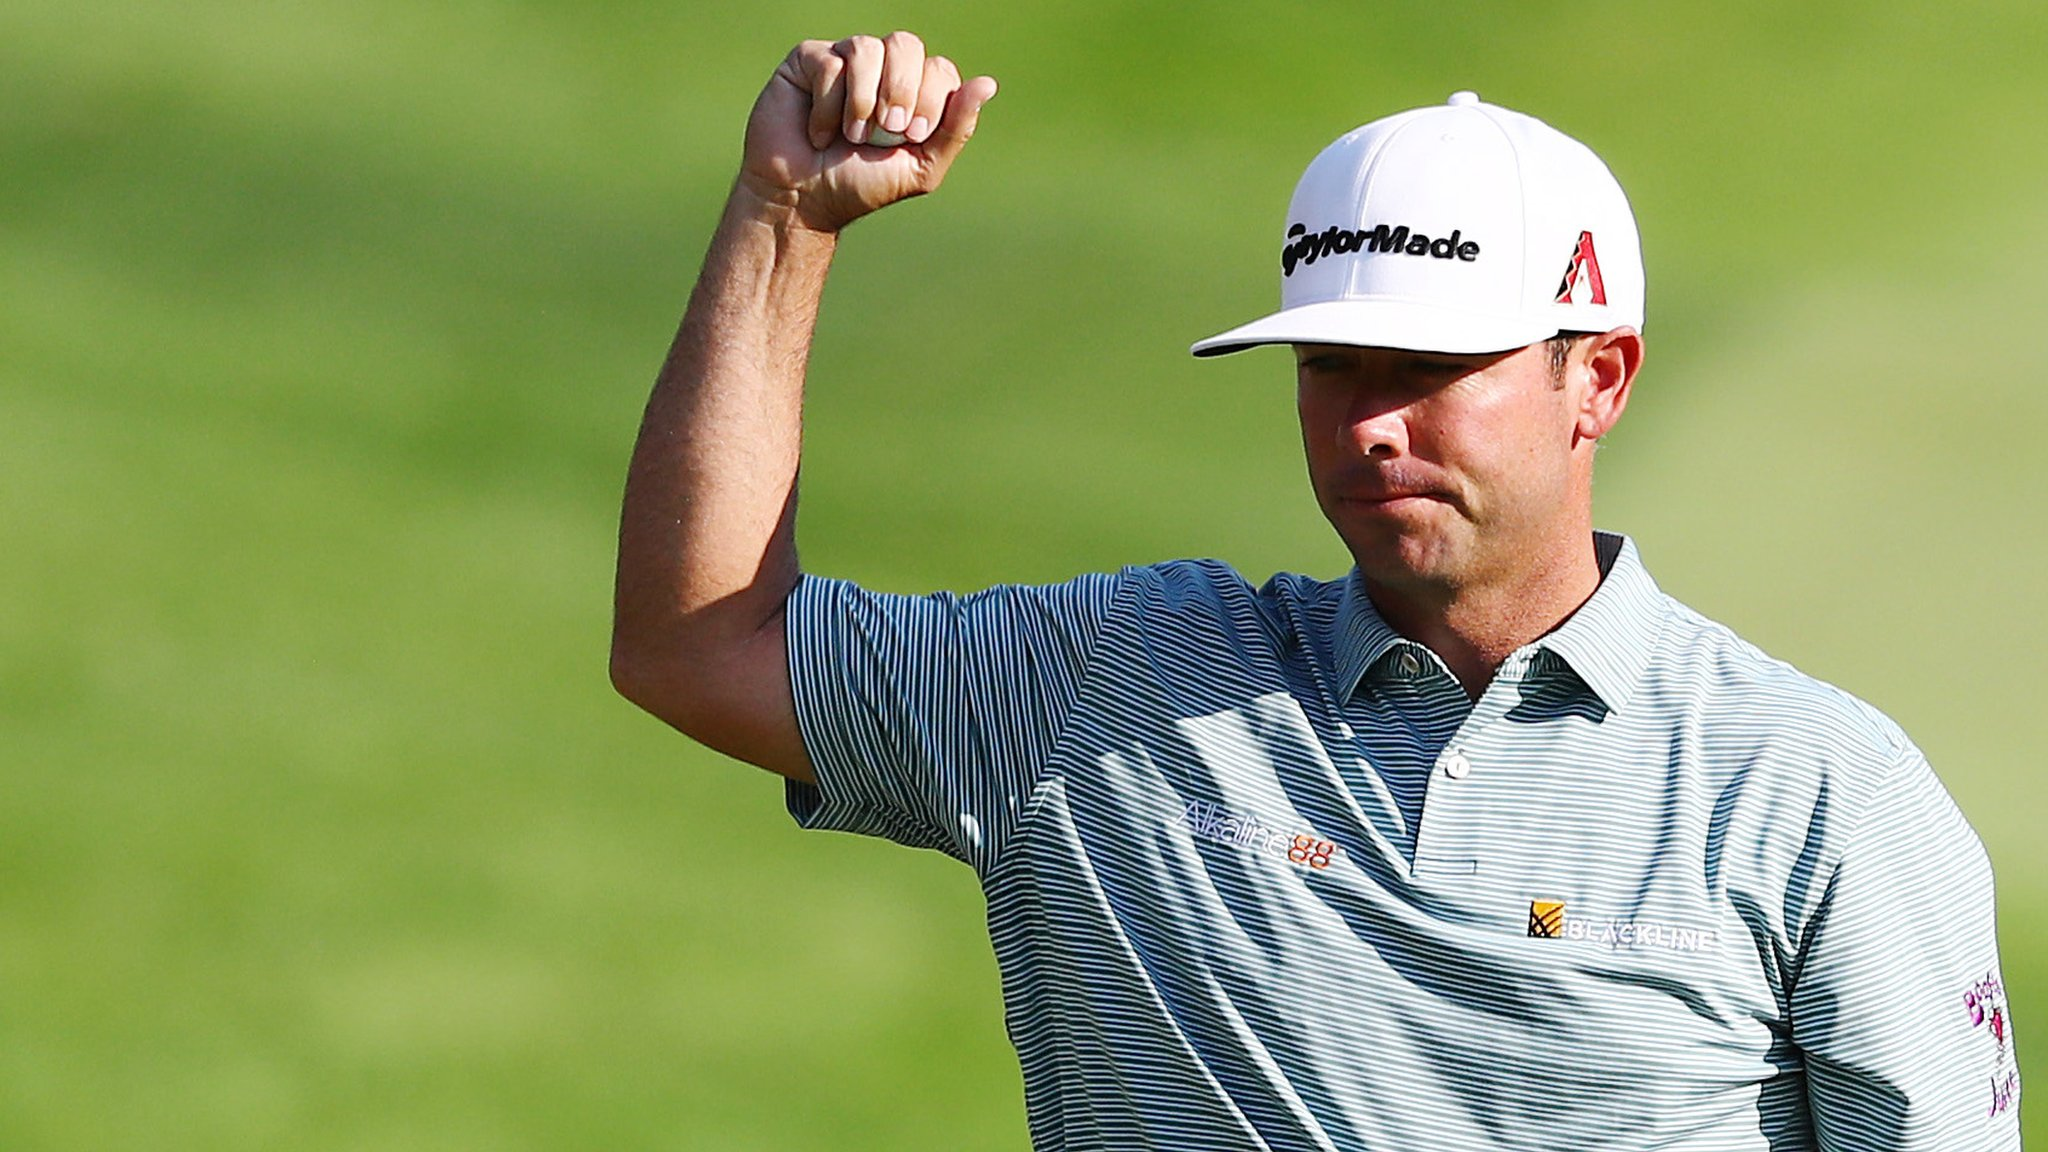 Reavie wins first PGA Tour title in 11 years